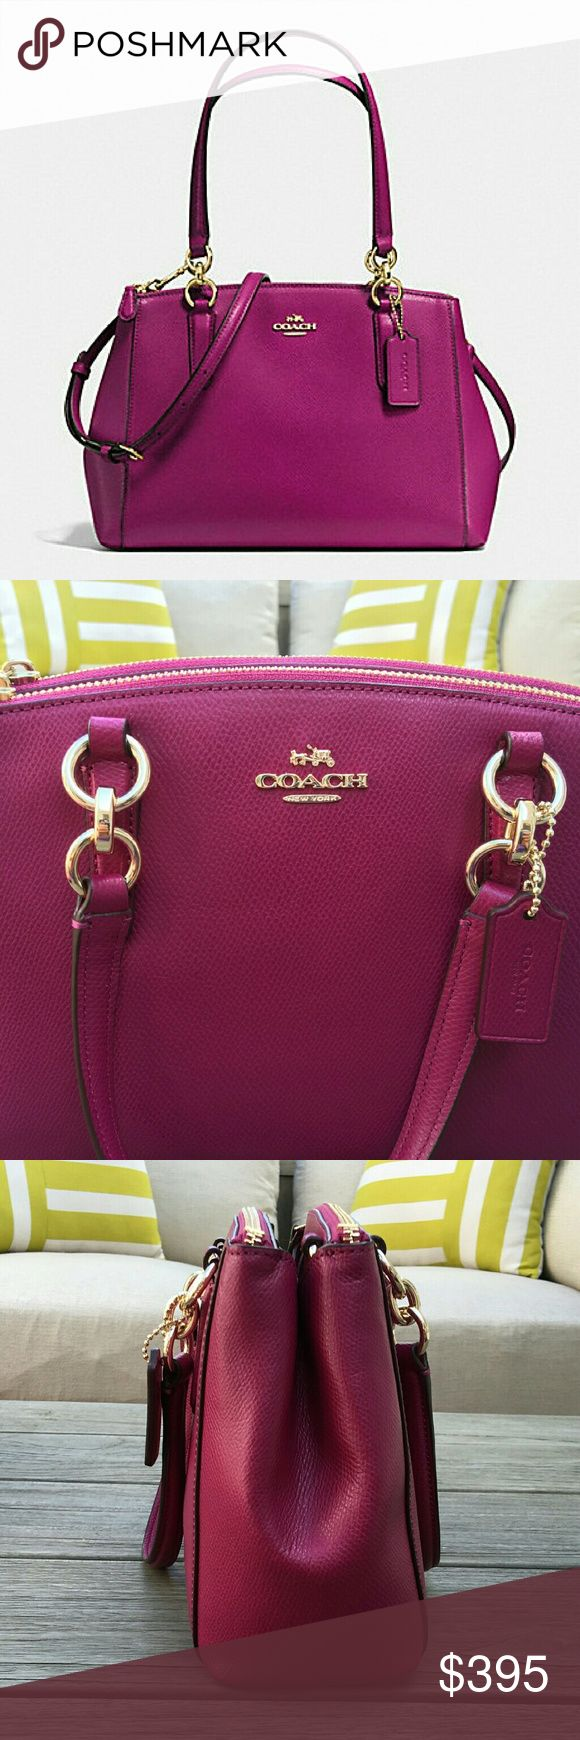 "COACH Fushia Small CHRISTIE Carryall Sophisticated and elegant in durable coated canvas, this modern, flared shape versatile bag is suitable for any occasion. A must see beauty!!  Signature PVC with leather trim Gold tone hardware Leather embossed Coach signature hangtag Snap closure Fabric lining 10.5""(L) x 7""(H) x 4""(W) Double leather handles with a 5.75"" drop  Smoke free / pet free home Coach Bags Mini Bags"